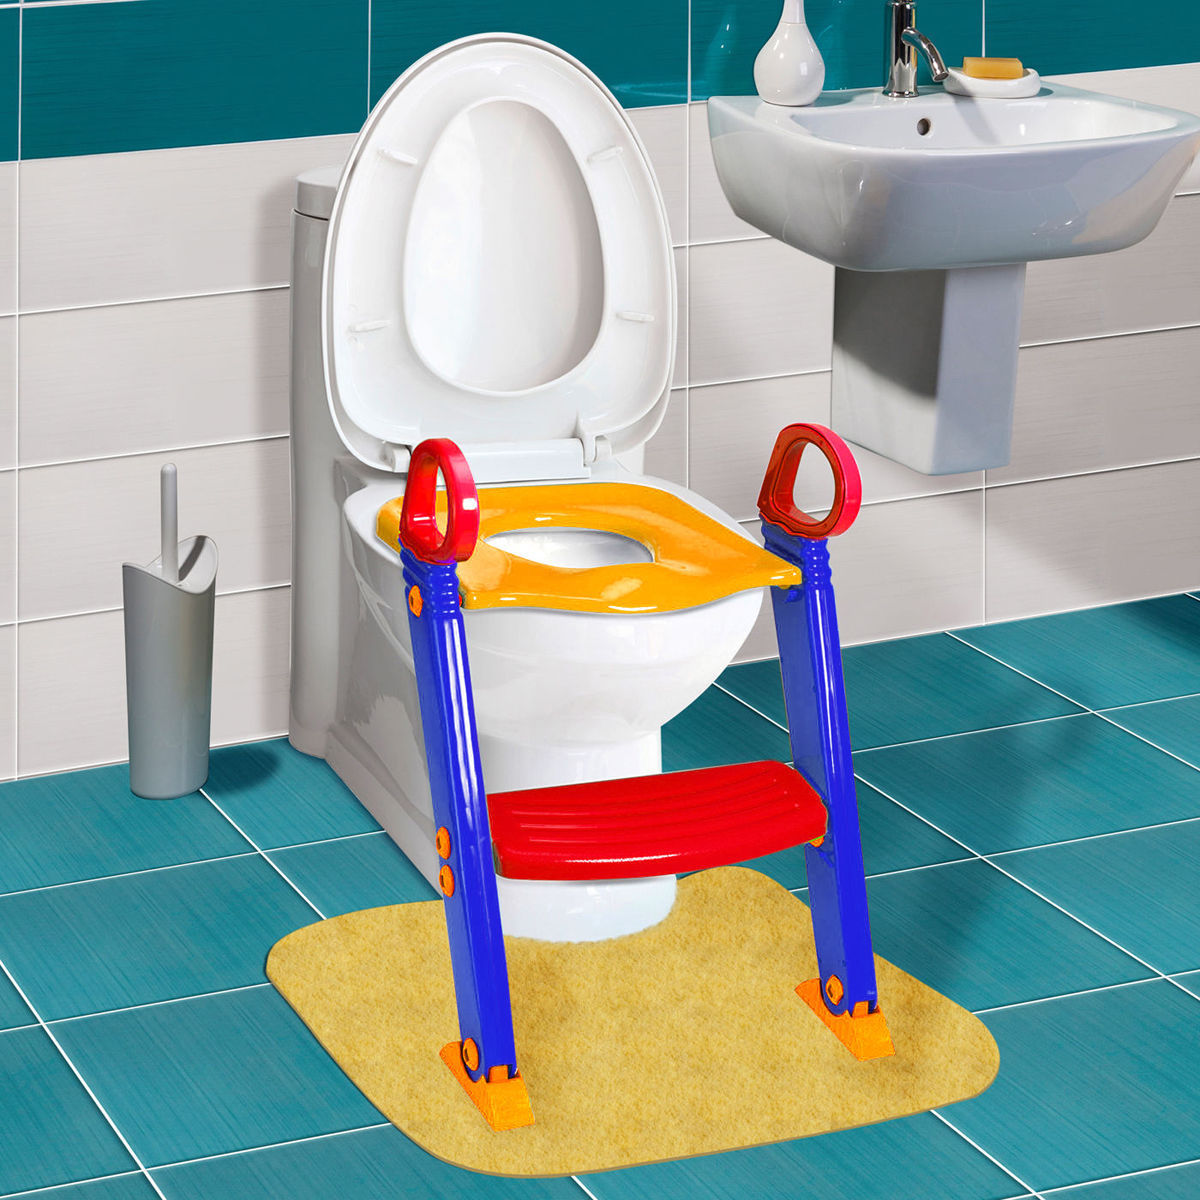 Trainer Toilet Potty Seat Chair Kids Toddler With Ladder Step Up Training Stool by Superjoe